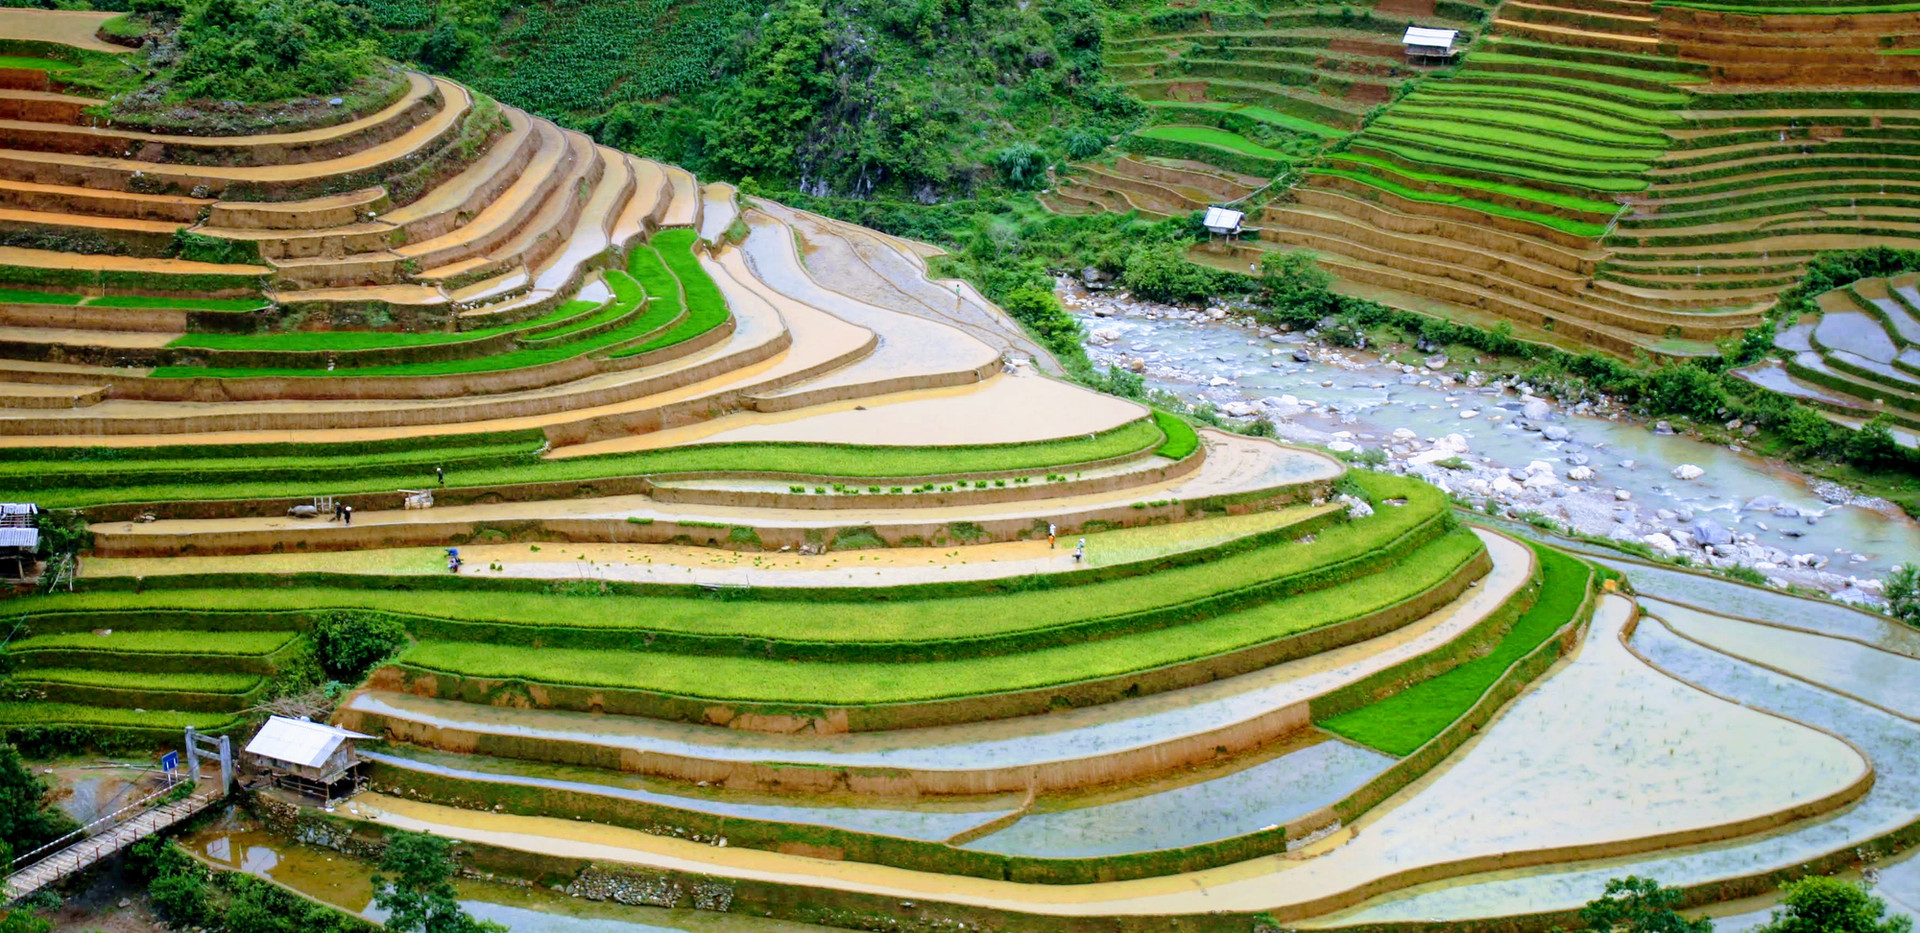 Mu Cang Chai in Rainy Season